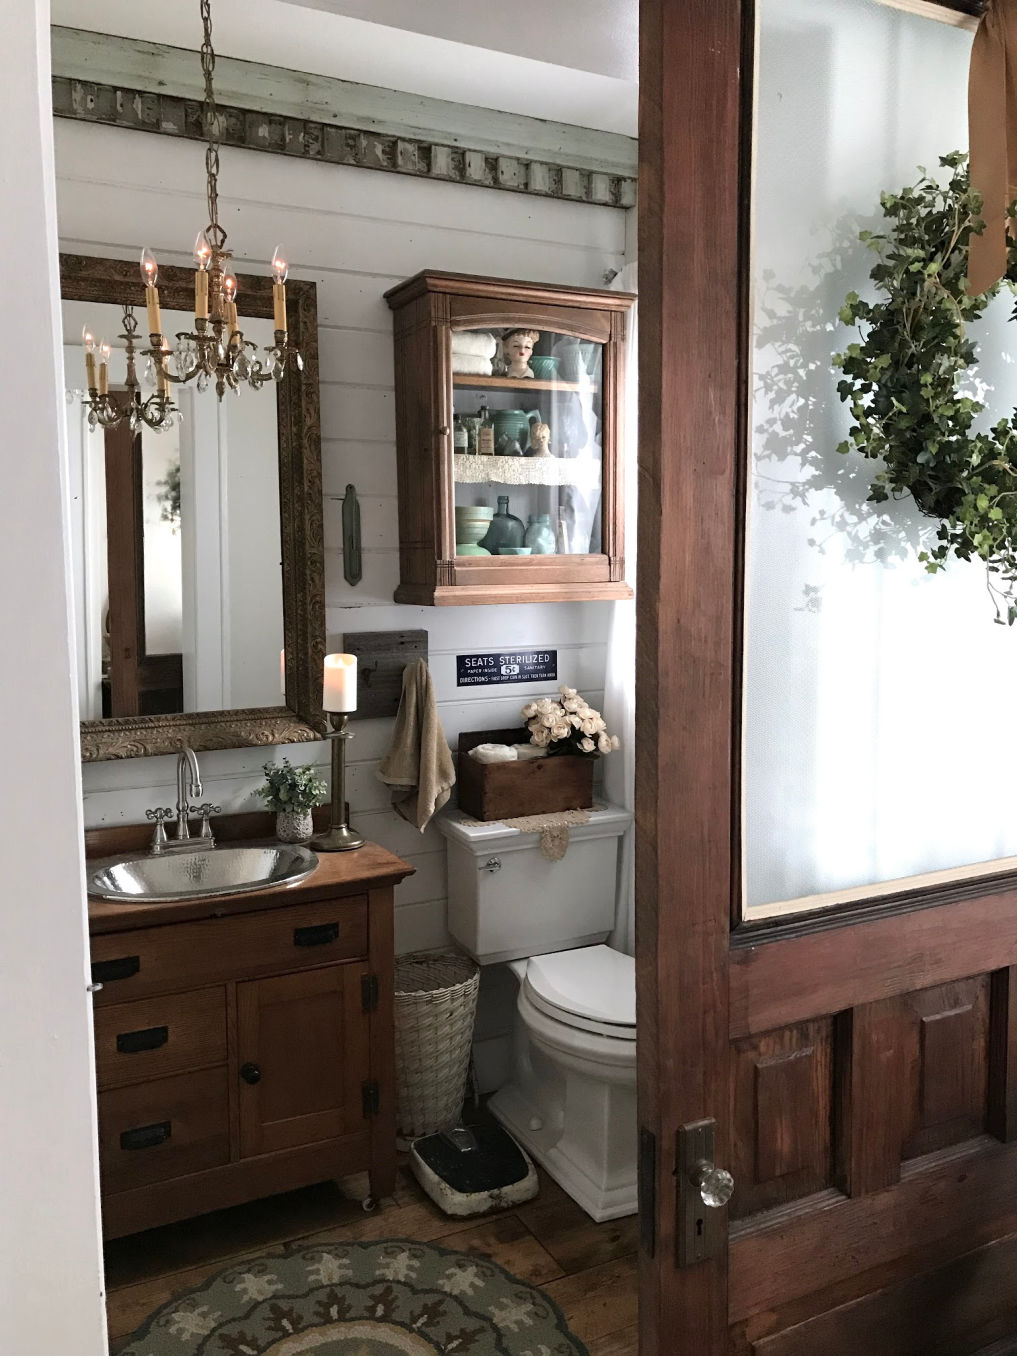 Farmhouse bathroom with old cabinet turned vanity #bathroom #powderroom #shiplap #farmhousebathroom #farmhousedecor #vintagedecor